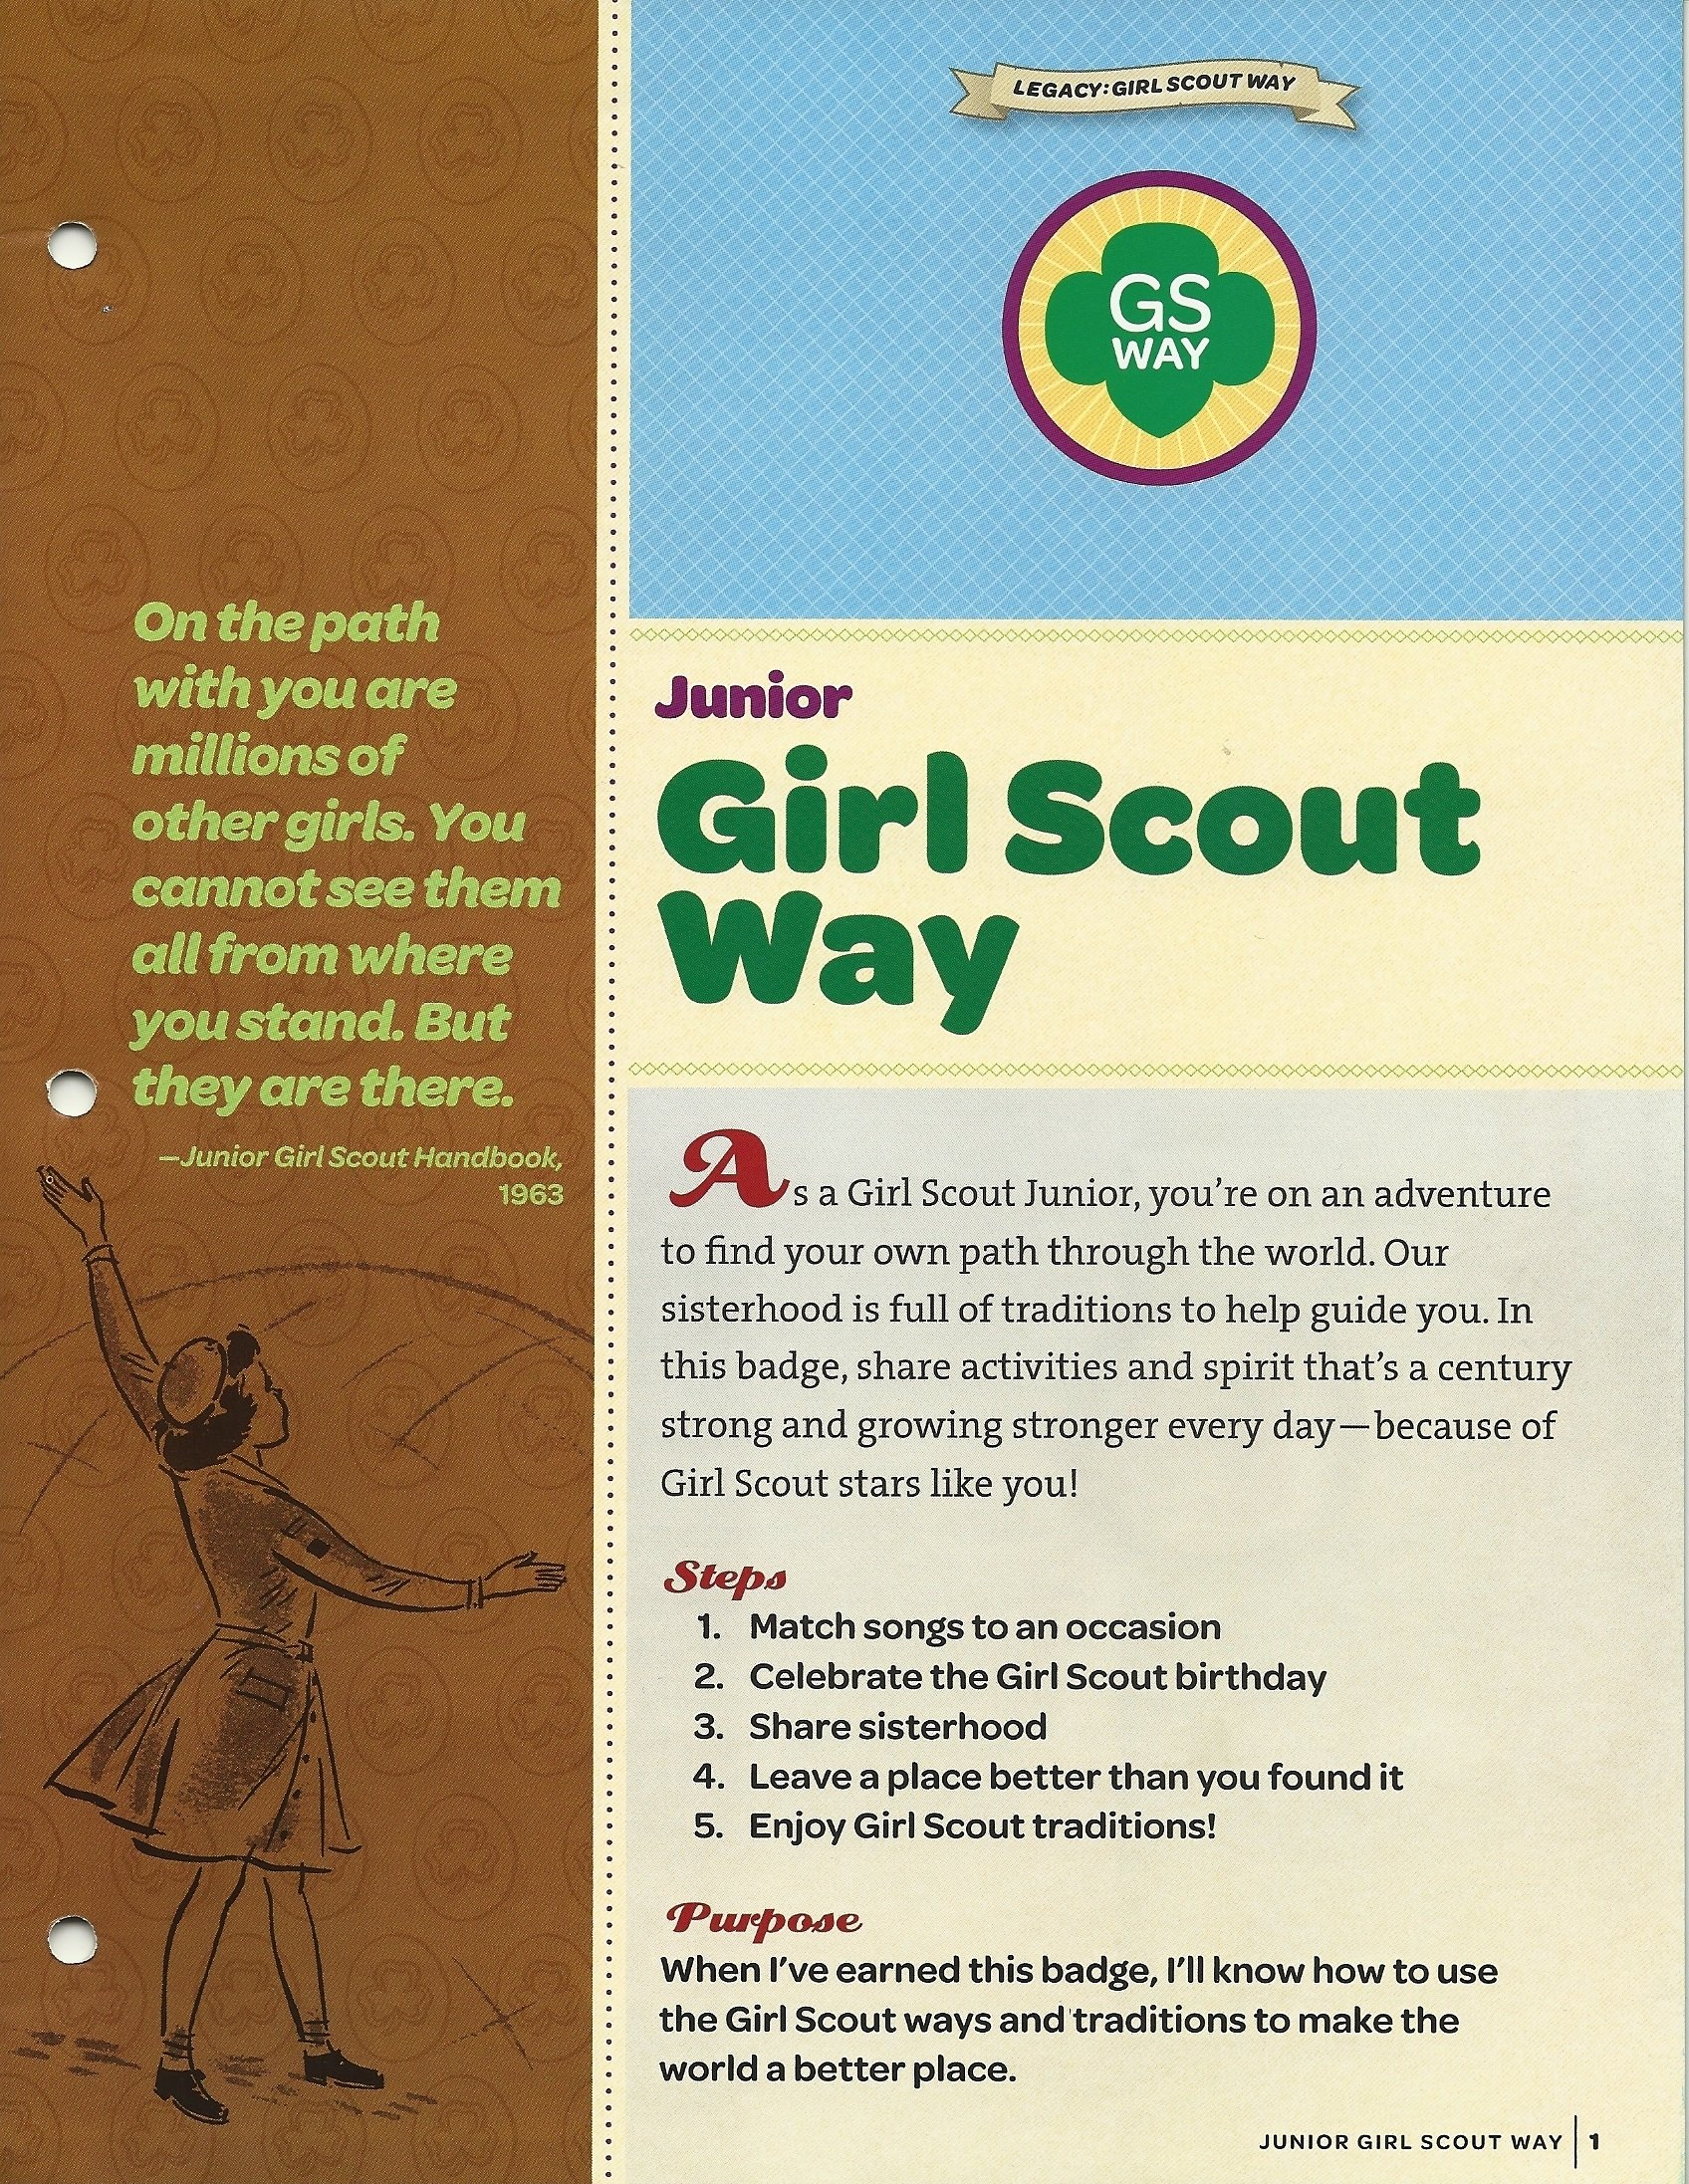 10 Fashionable Girl Scout Way Badge Ideas girl scout way troop 7416 2020